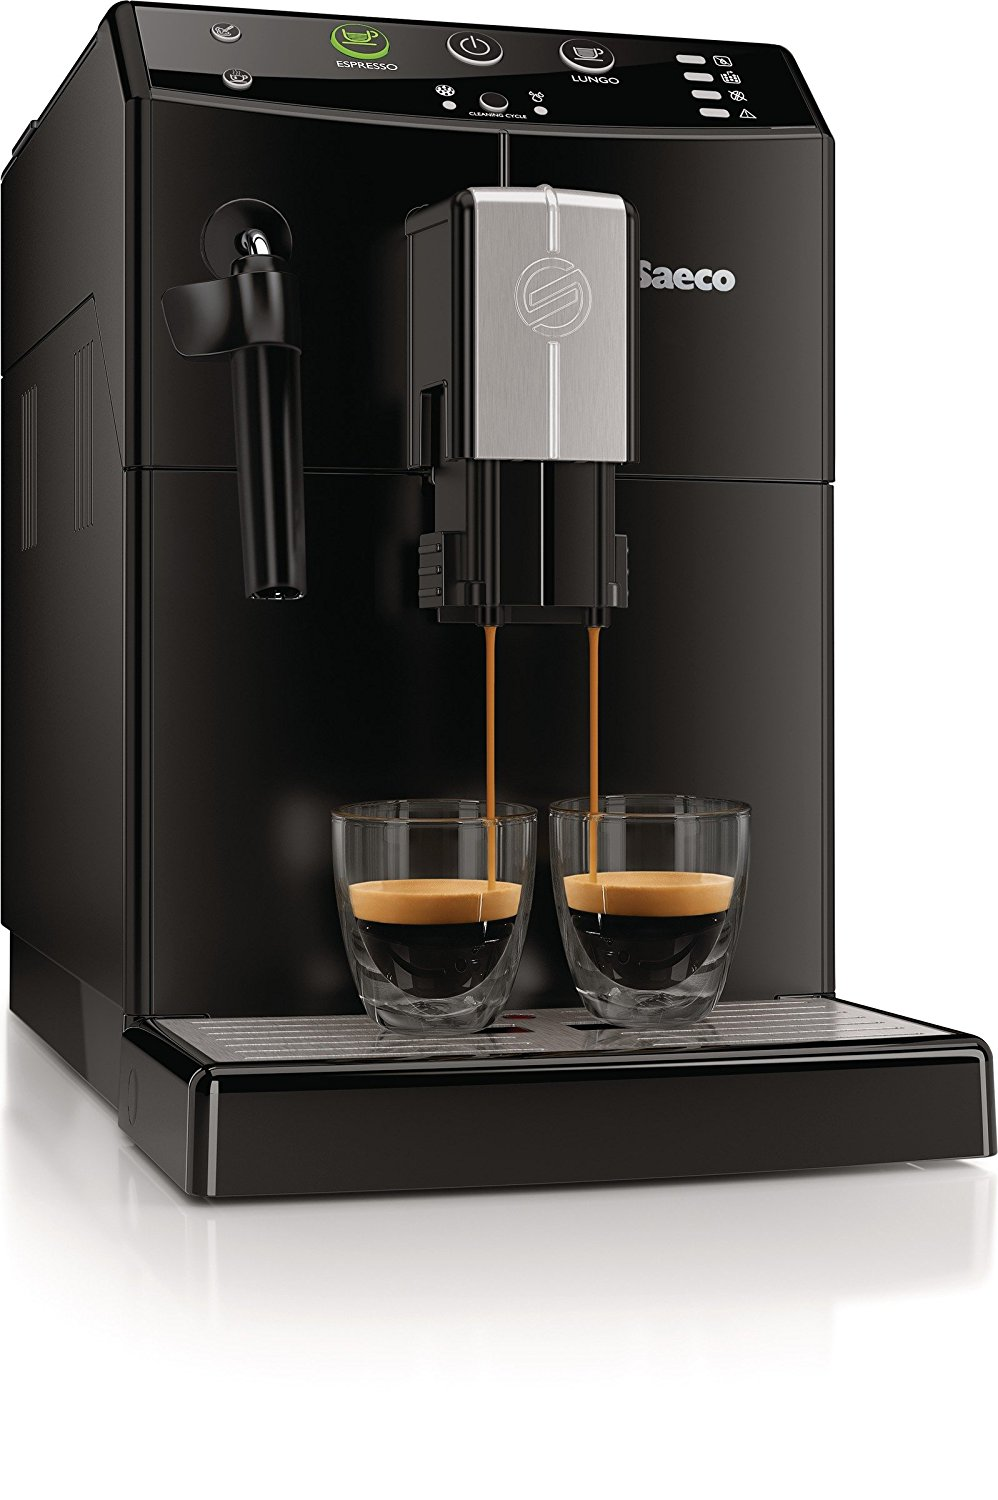 expresso espresso case analysis A case study should include background information on focused on making perfect espresso constructing a business case for training: cause, coincidence, or.